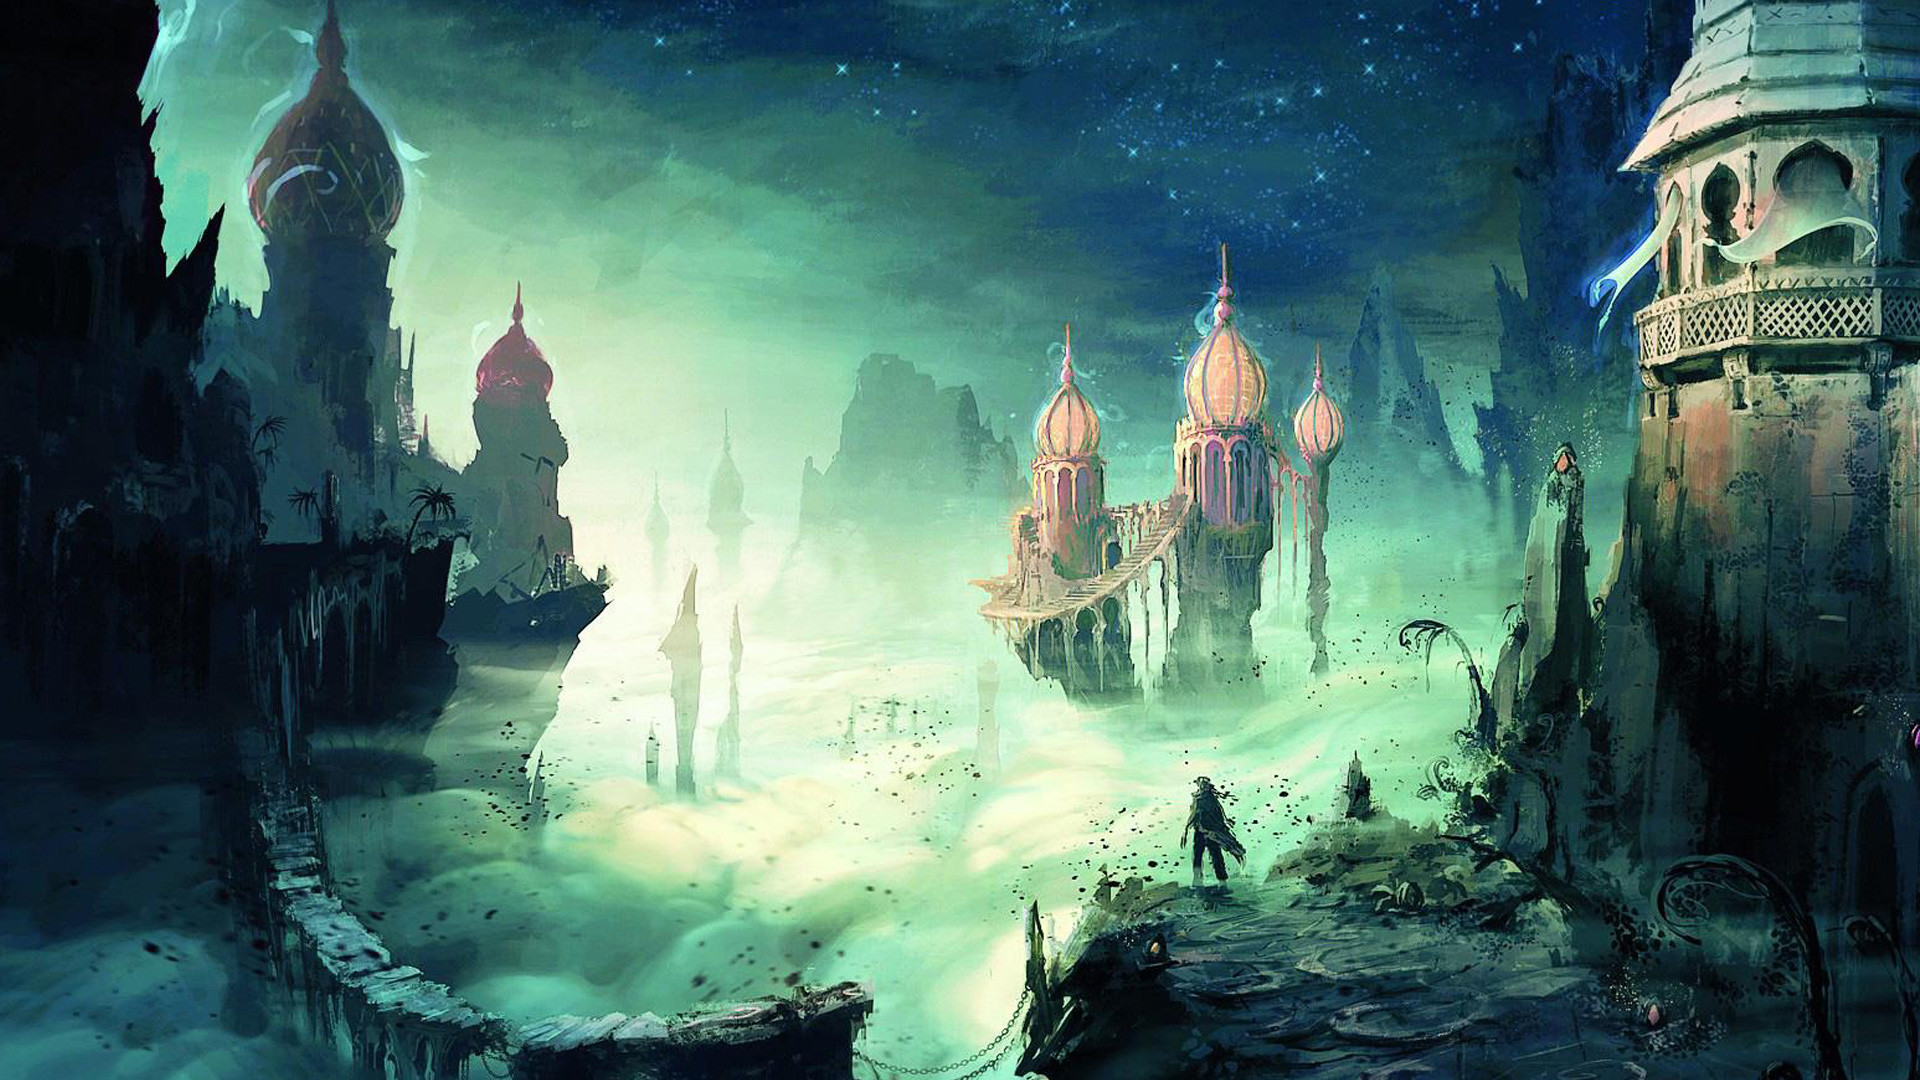 Prince of Persia Wallpapers HD for Android APK